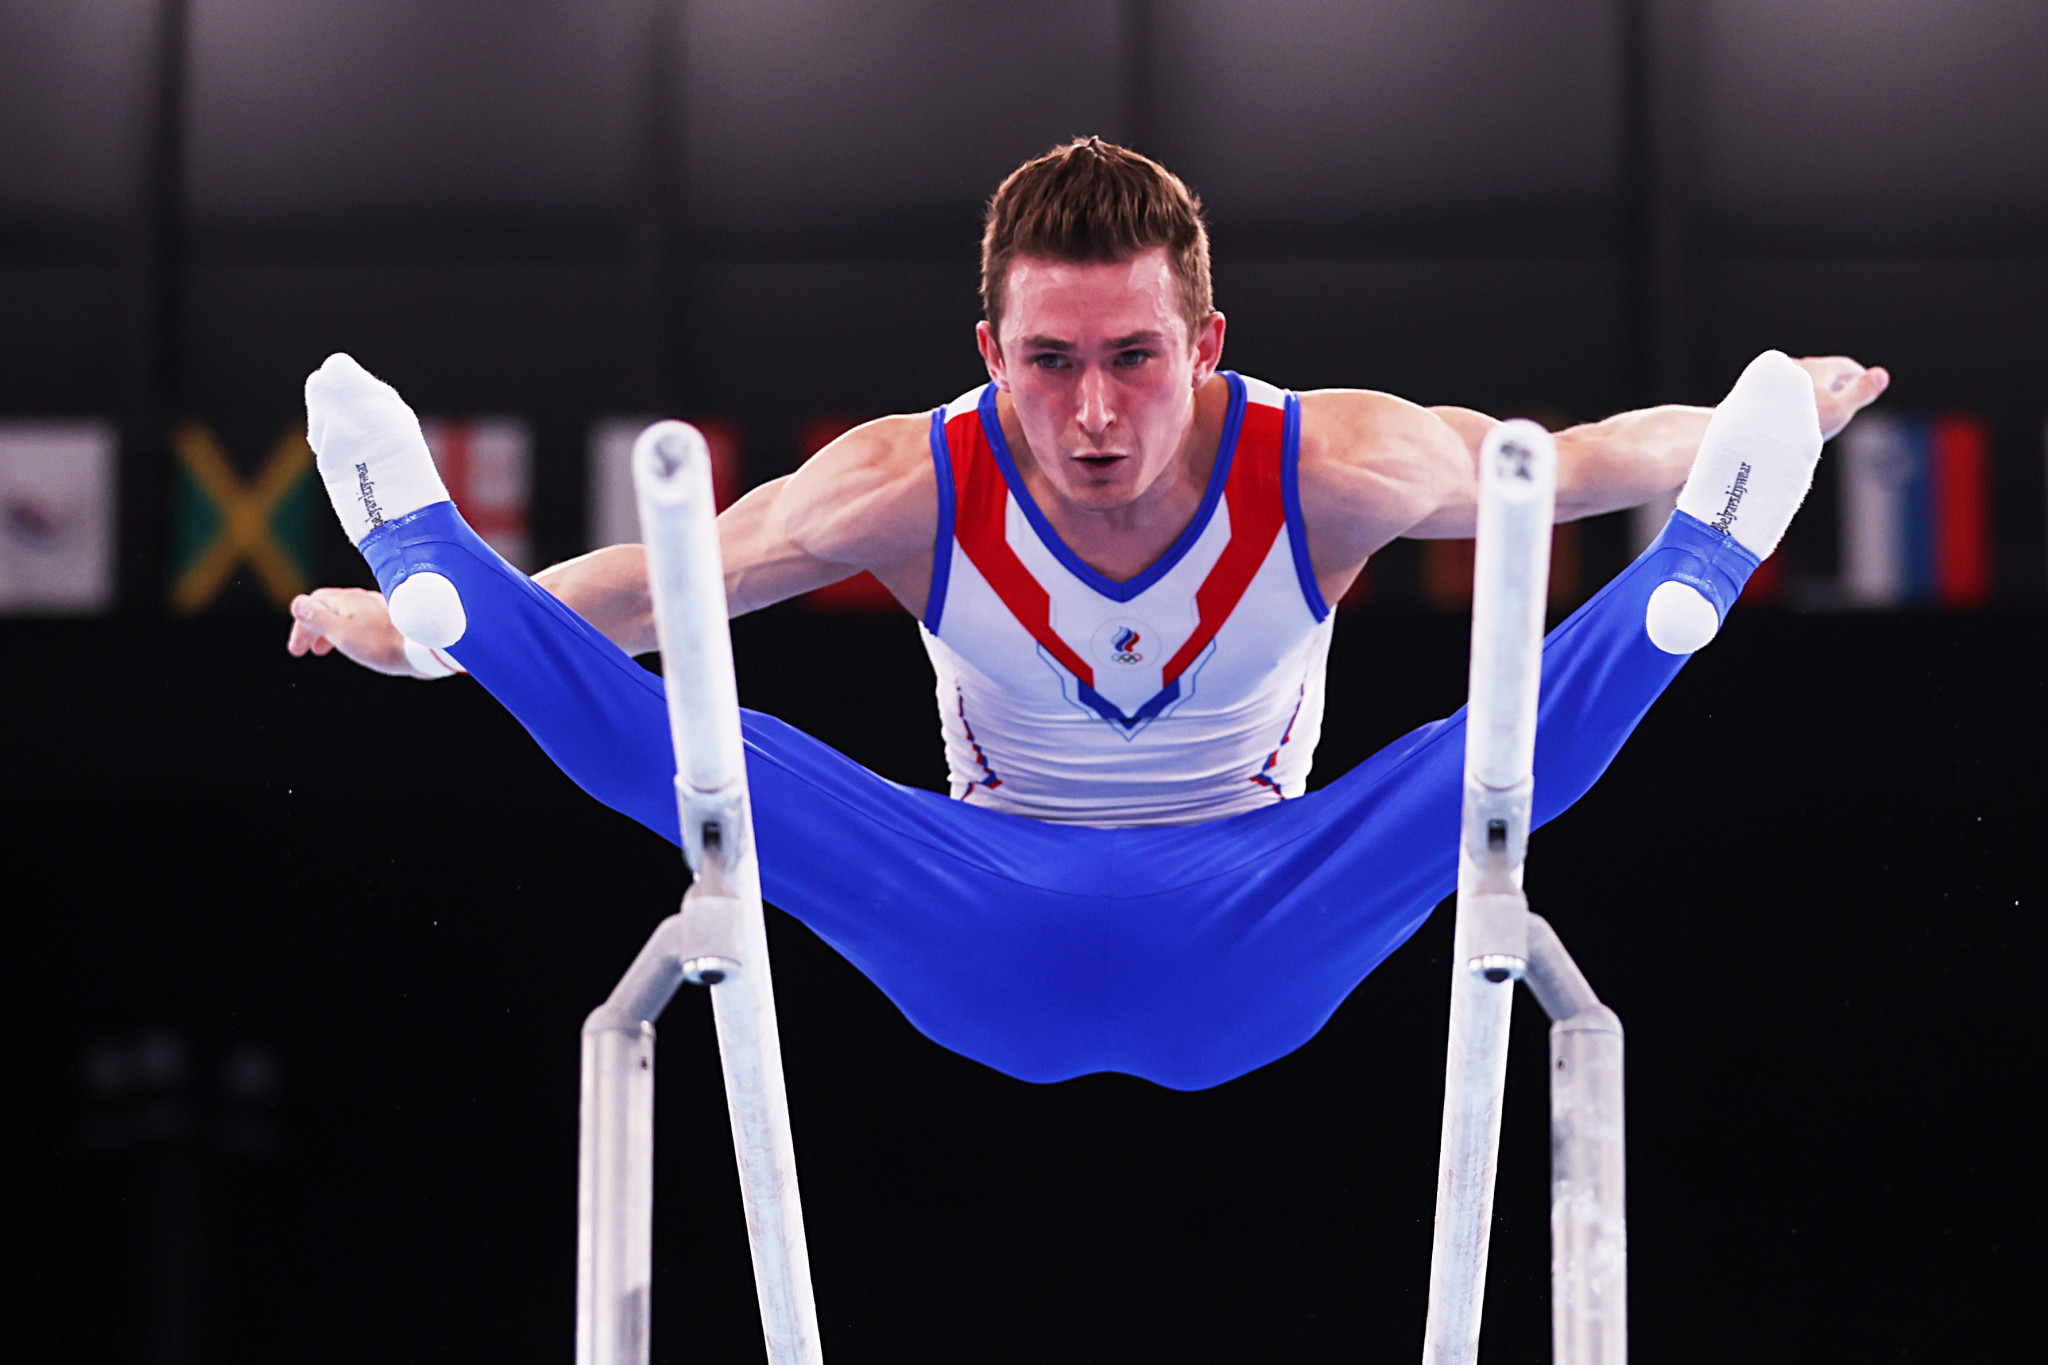 David Belyavskiy parallel bars routine achieved a score of 15.333 in the men's artistic team all-around final at Tokyo 2020 ©Getty Images